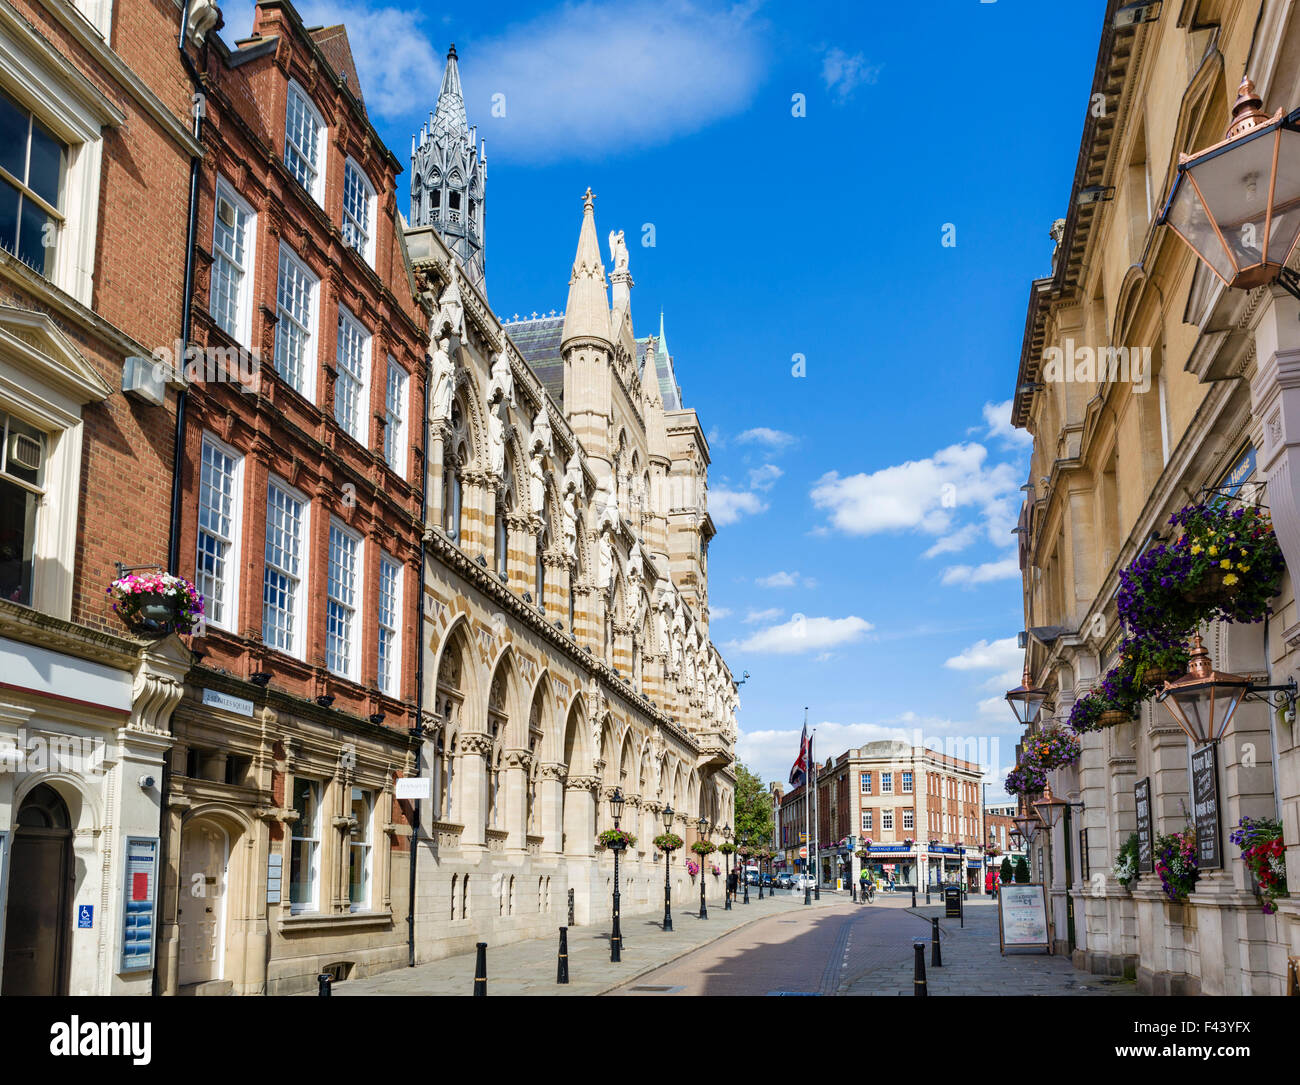 St Giles' Square in the town centre with the Guildhall on the left, Northampton, Northamptonshire, England, - Stock Image